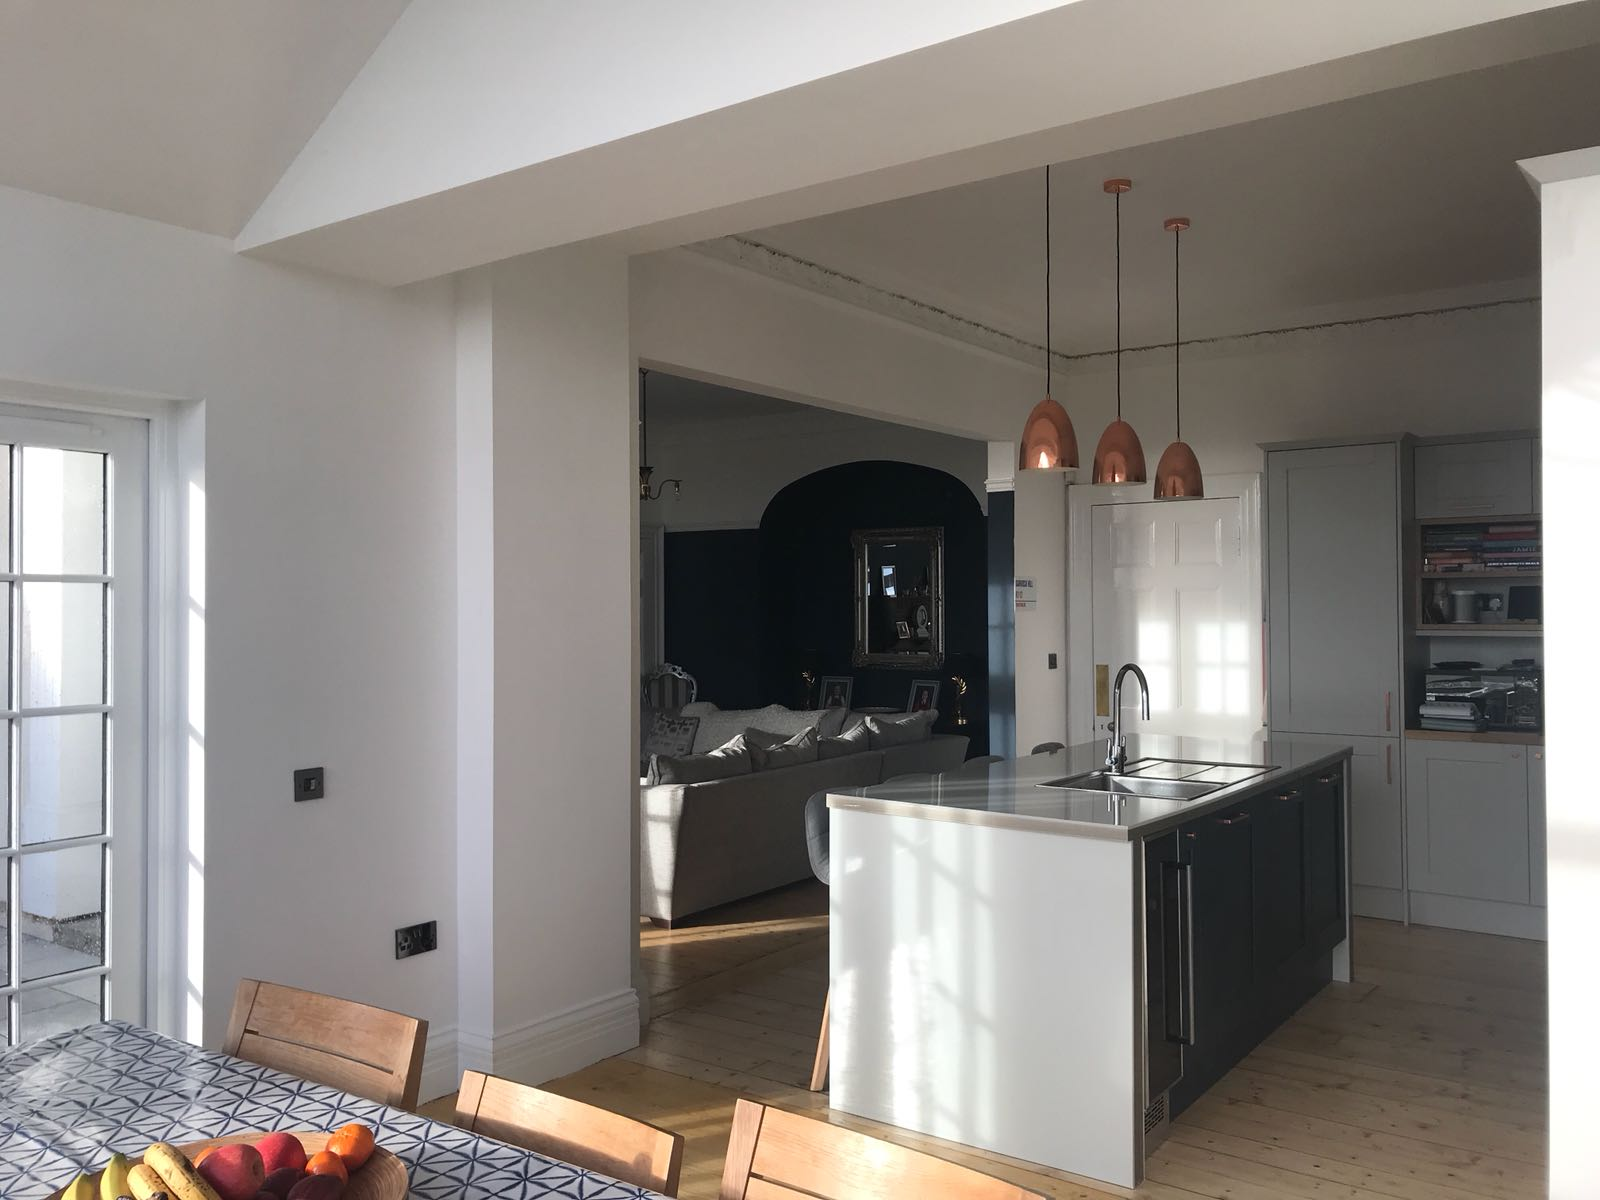 Kitchen installation within extension in Dunfermline